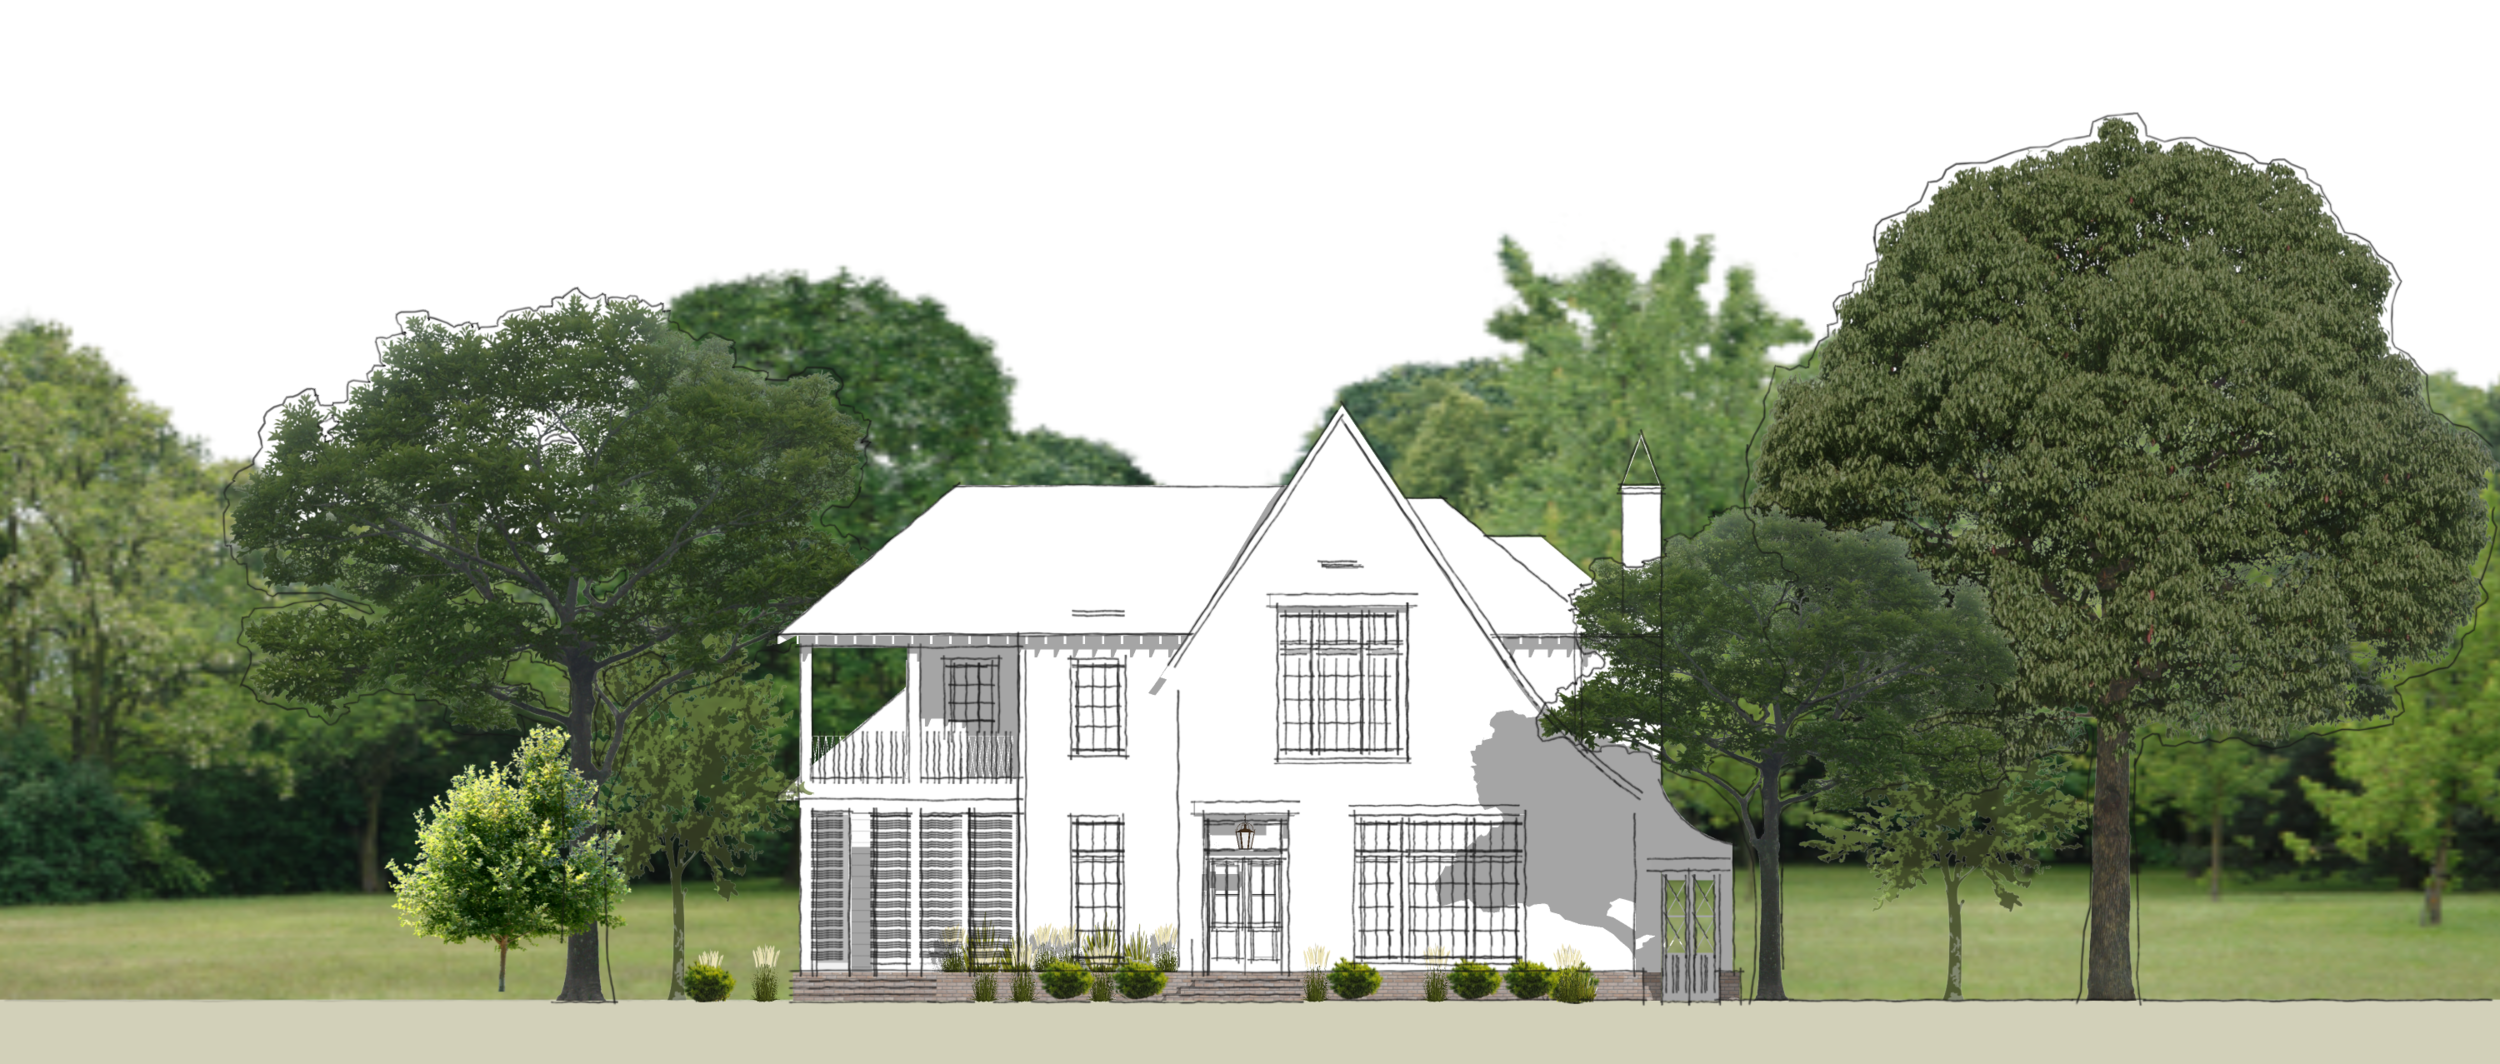 Township_Front Elevation - Schneidewind.png